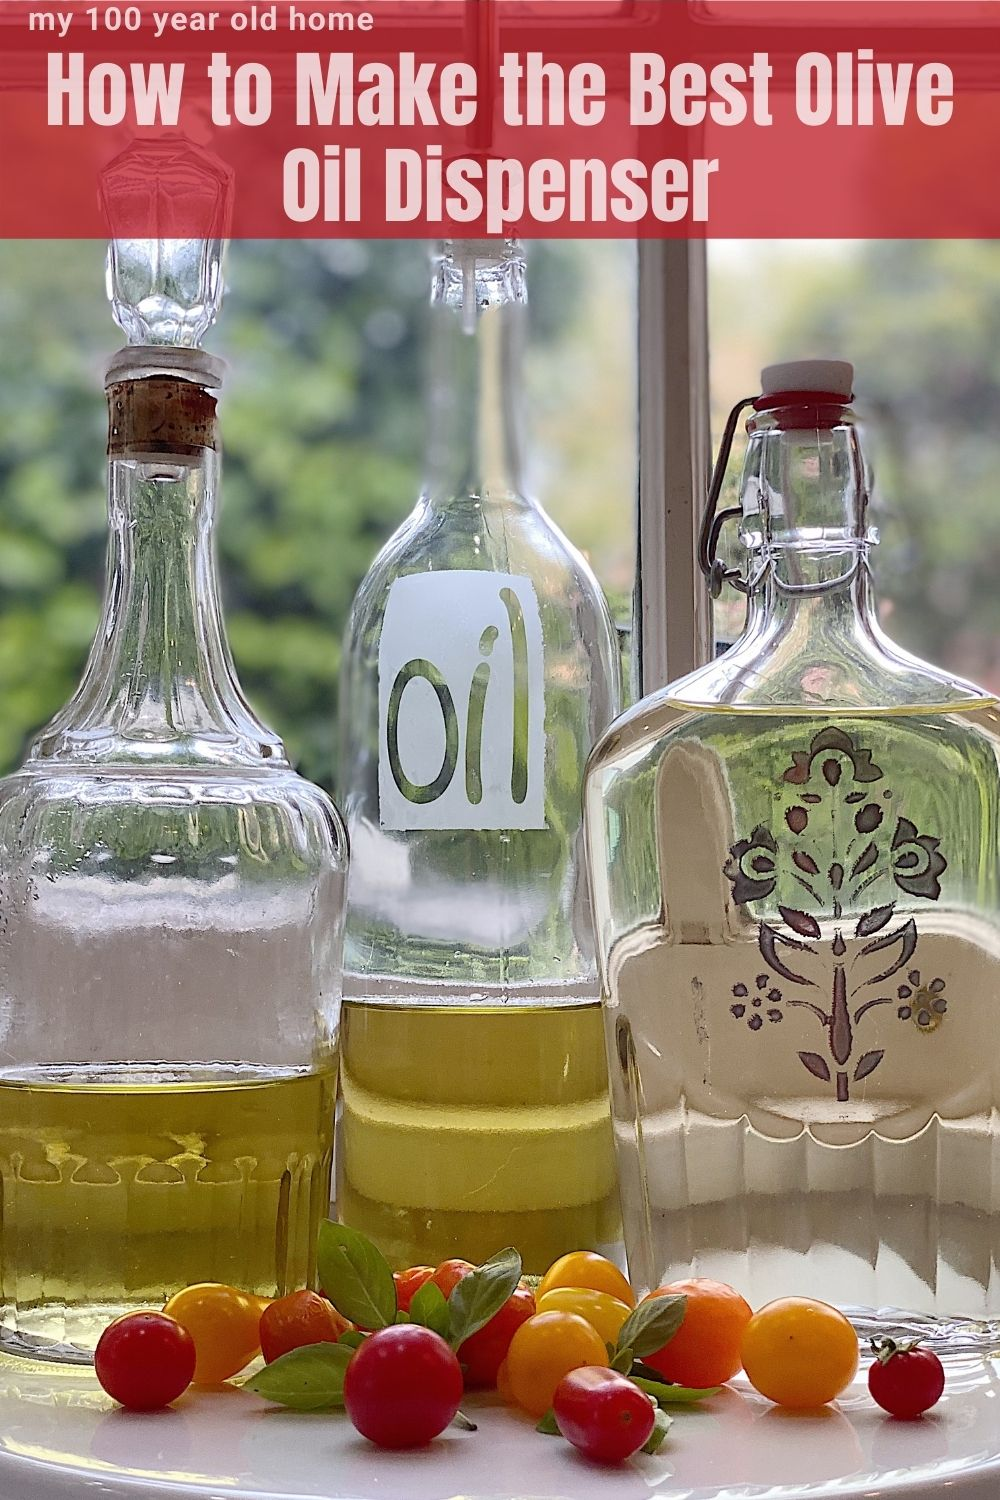 I love the vintage glass decanter I use as an olive oil dispenser. Today I shared three olive oil container bottles you can make using a recycled decanter, wine bottle, or syrup bottle.